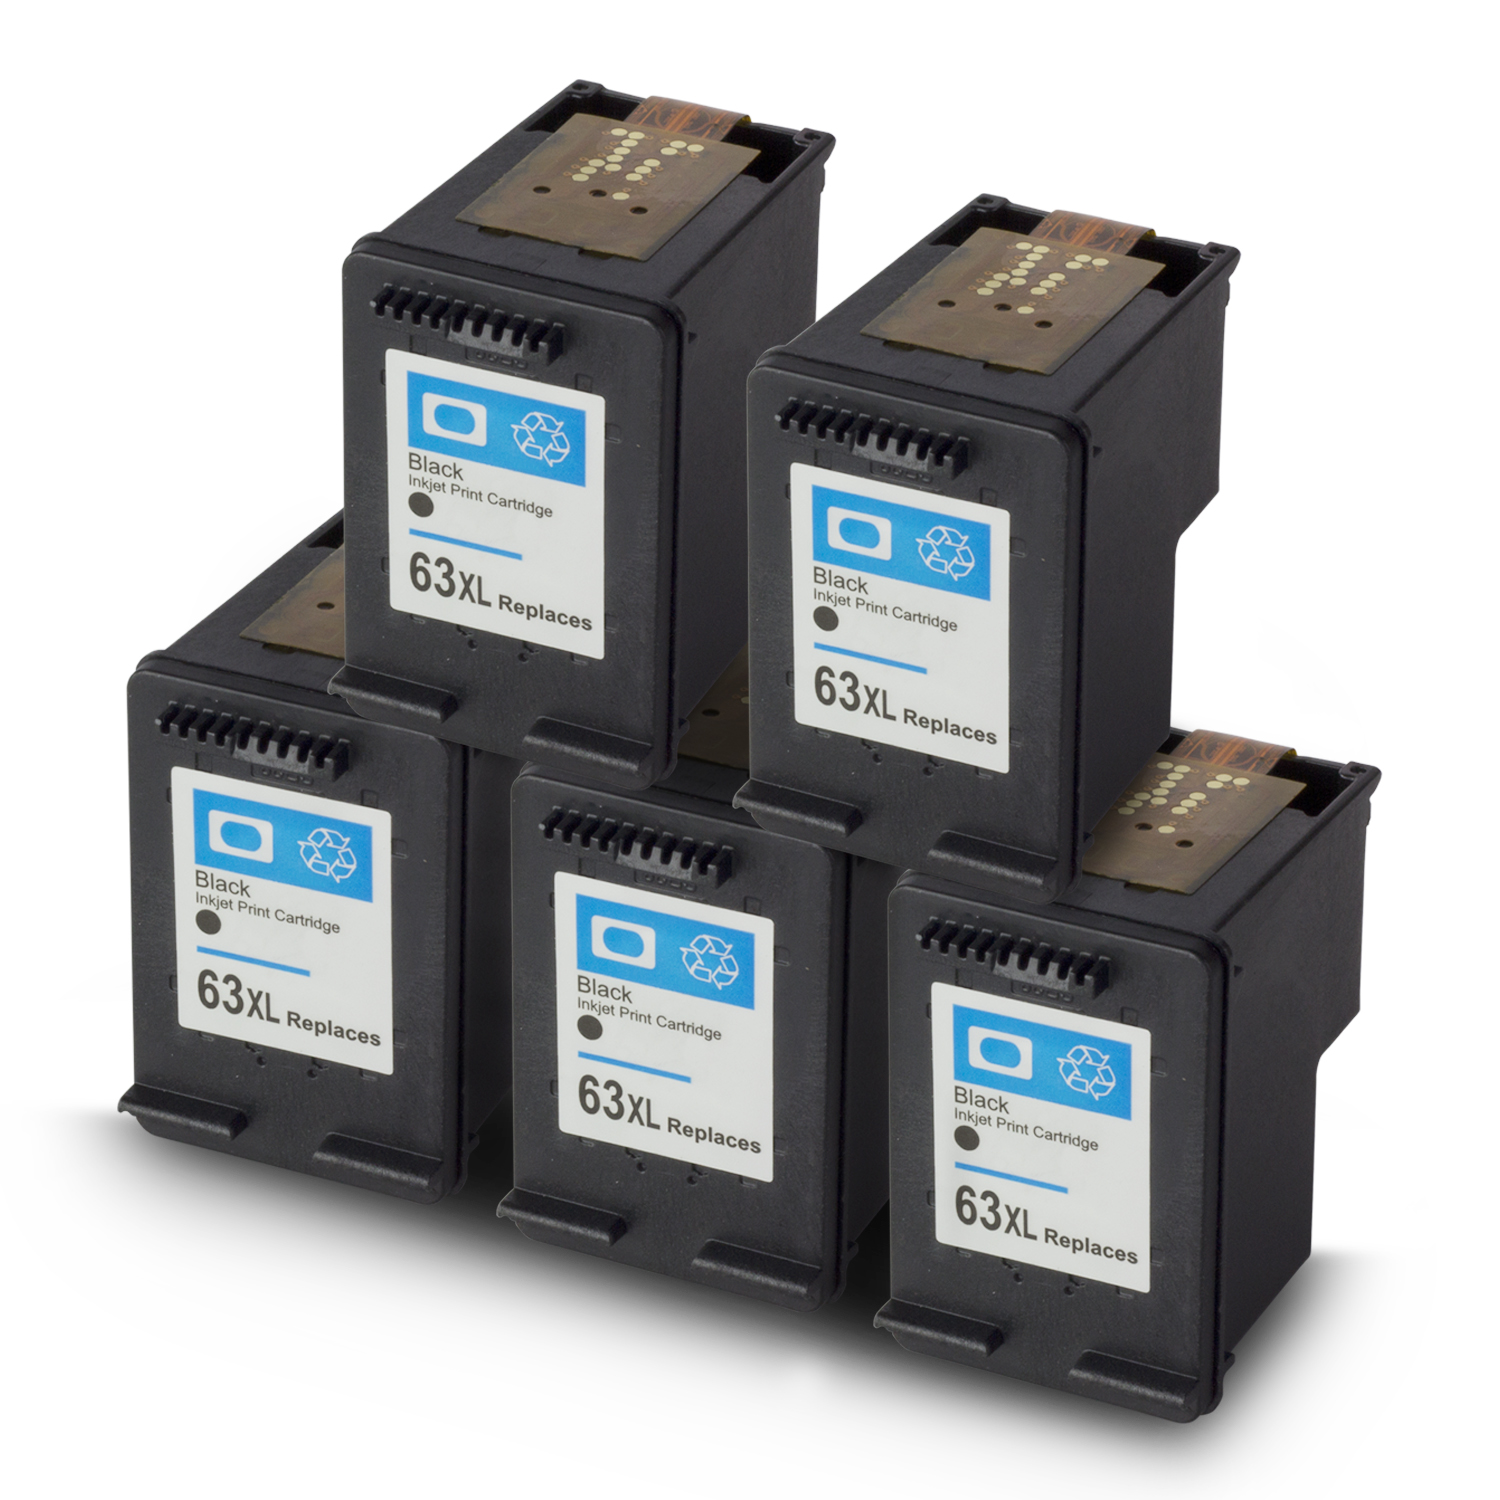 SOJIINK Remanufactured HP Replacement High Yield Black Ink Cartridge W Auto Level Reset